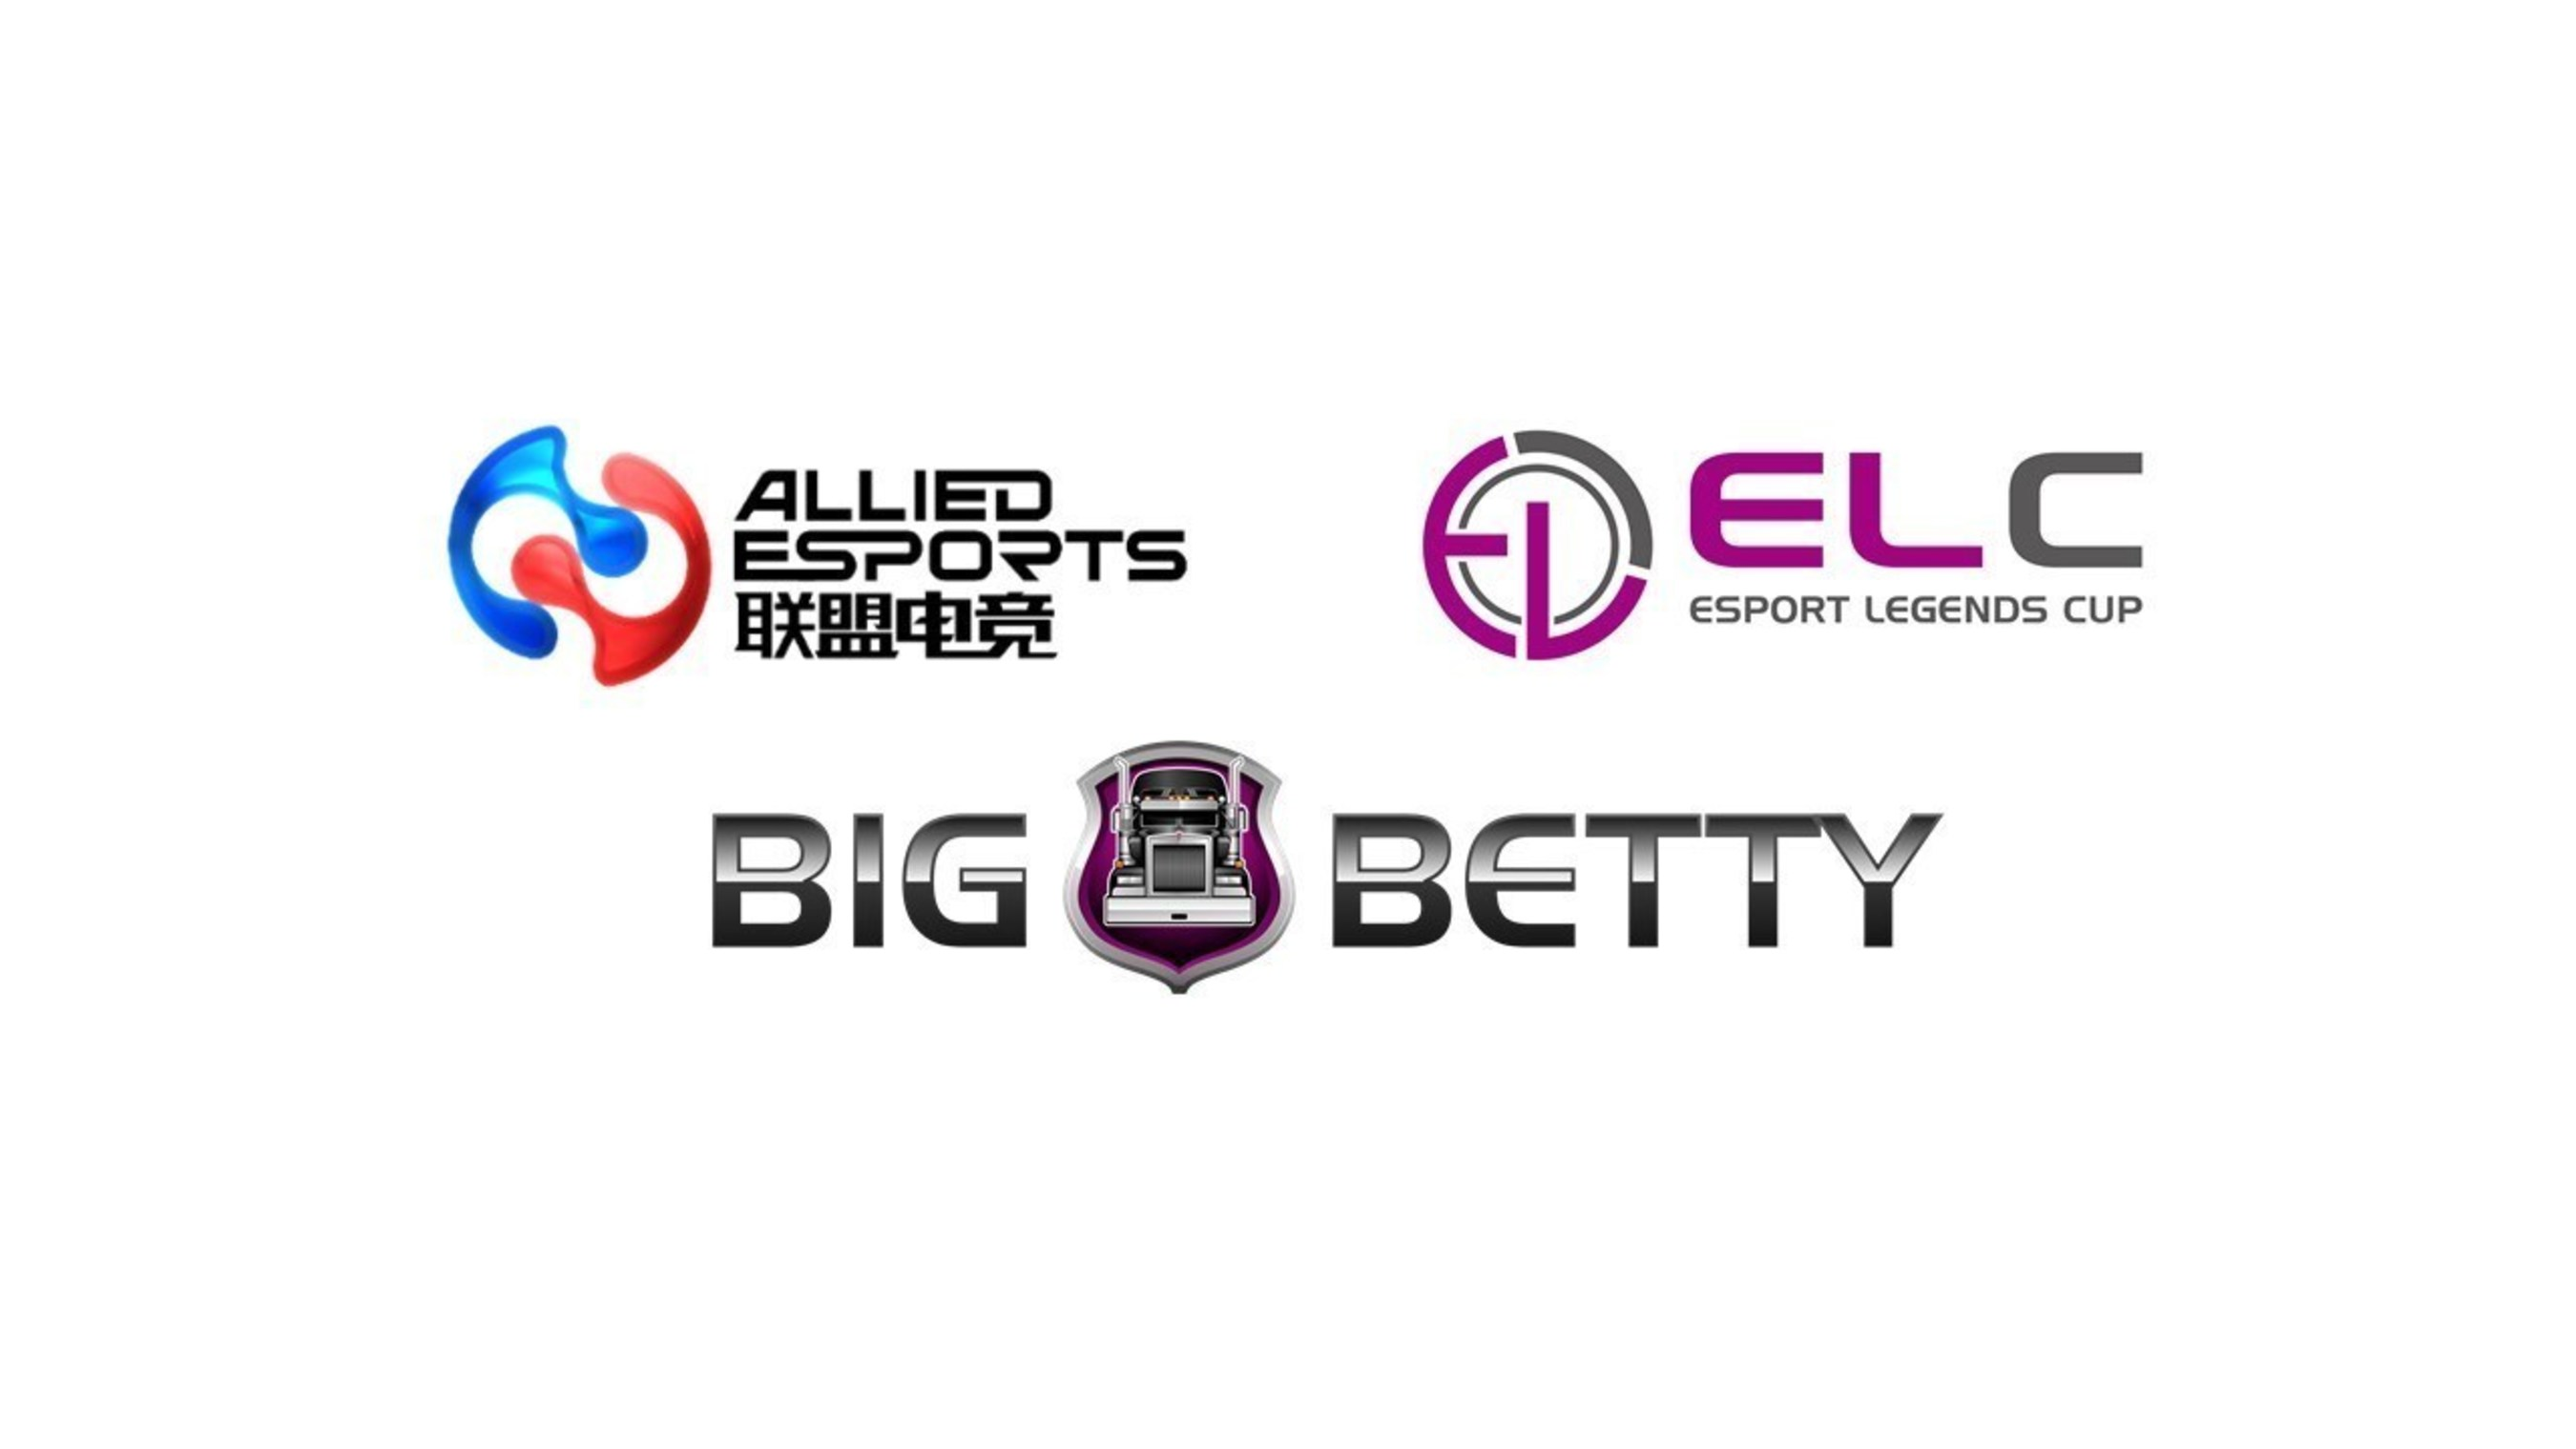 Allied eSports, ELC Gaming and Big Betty logo